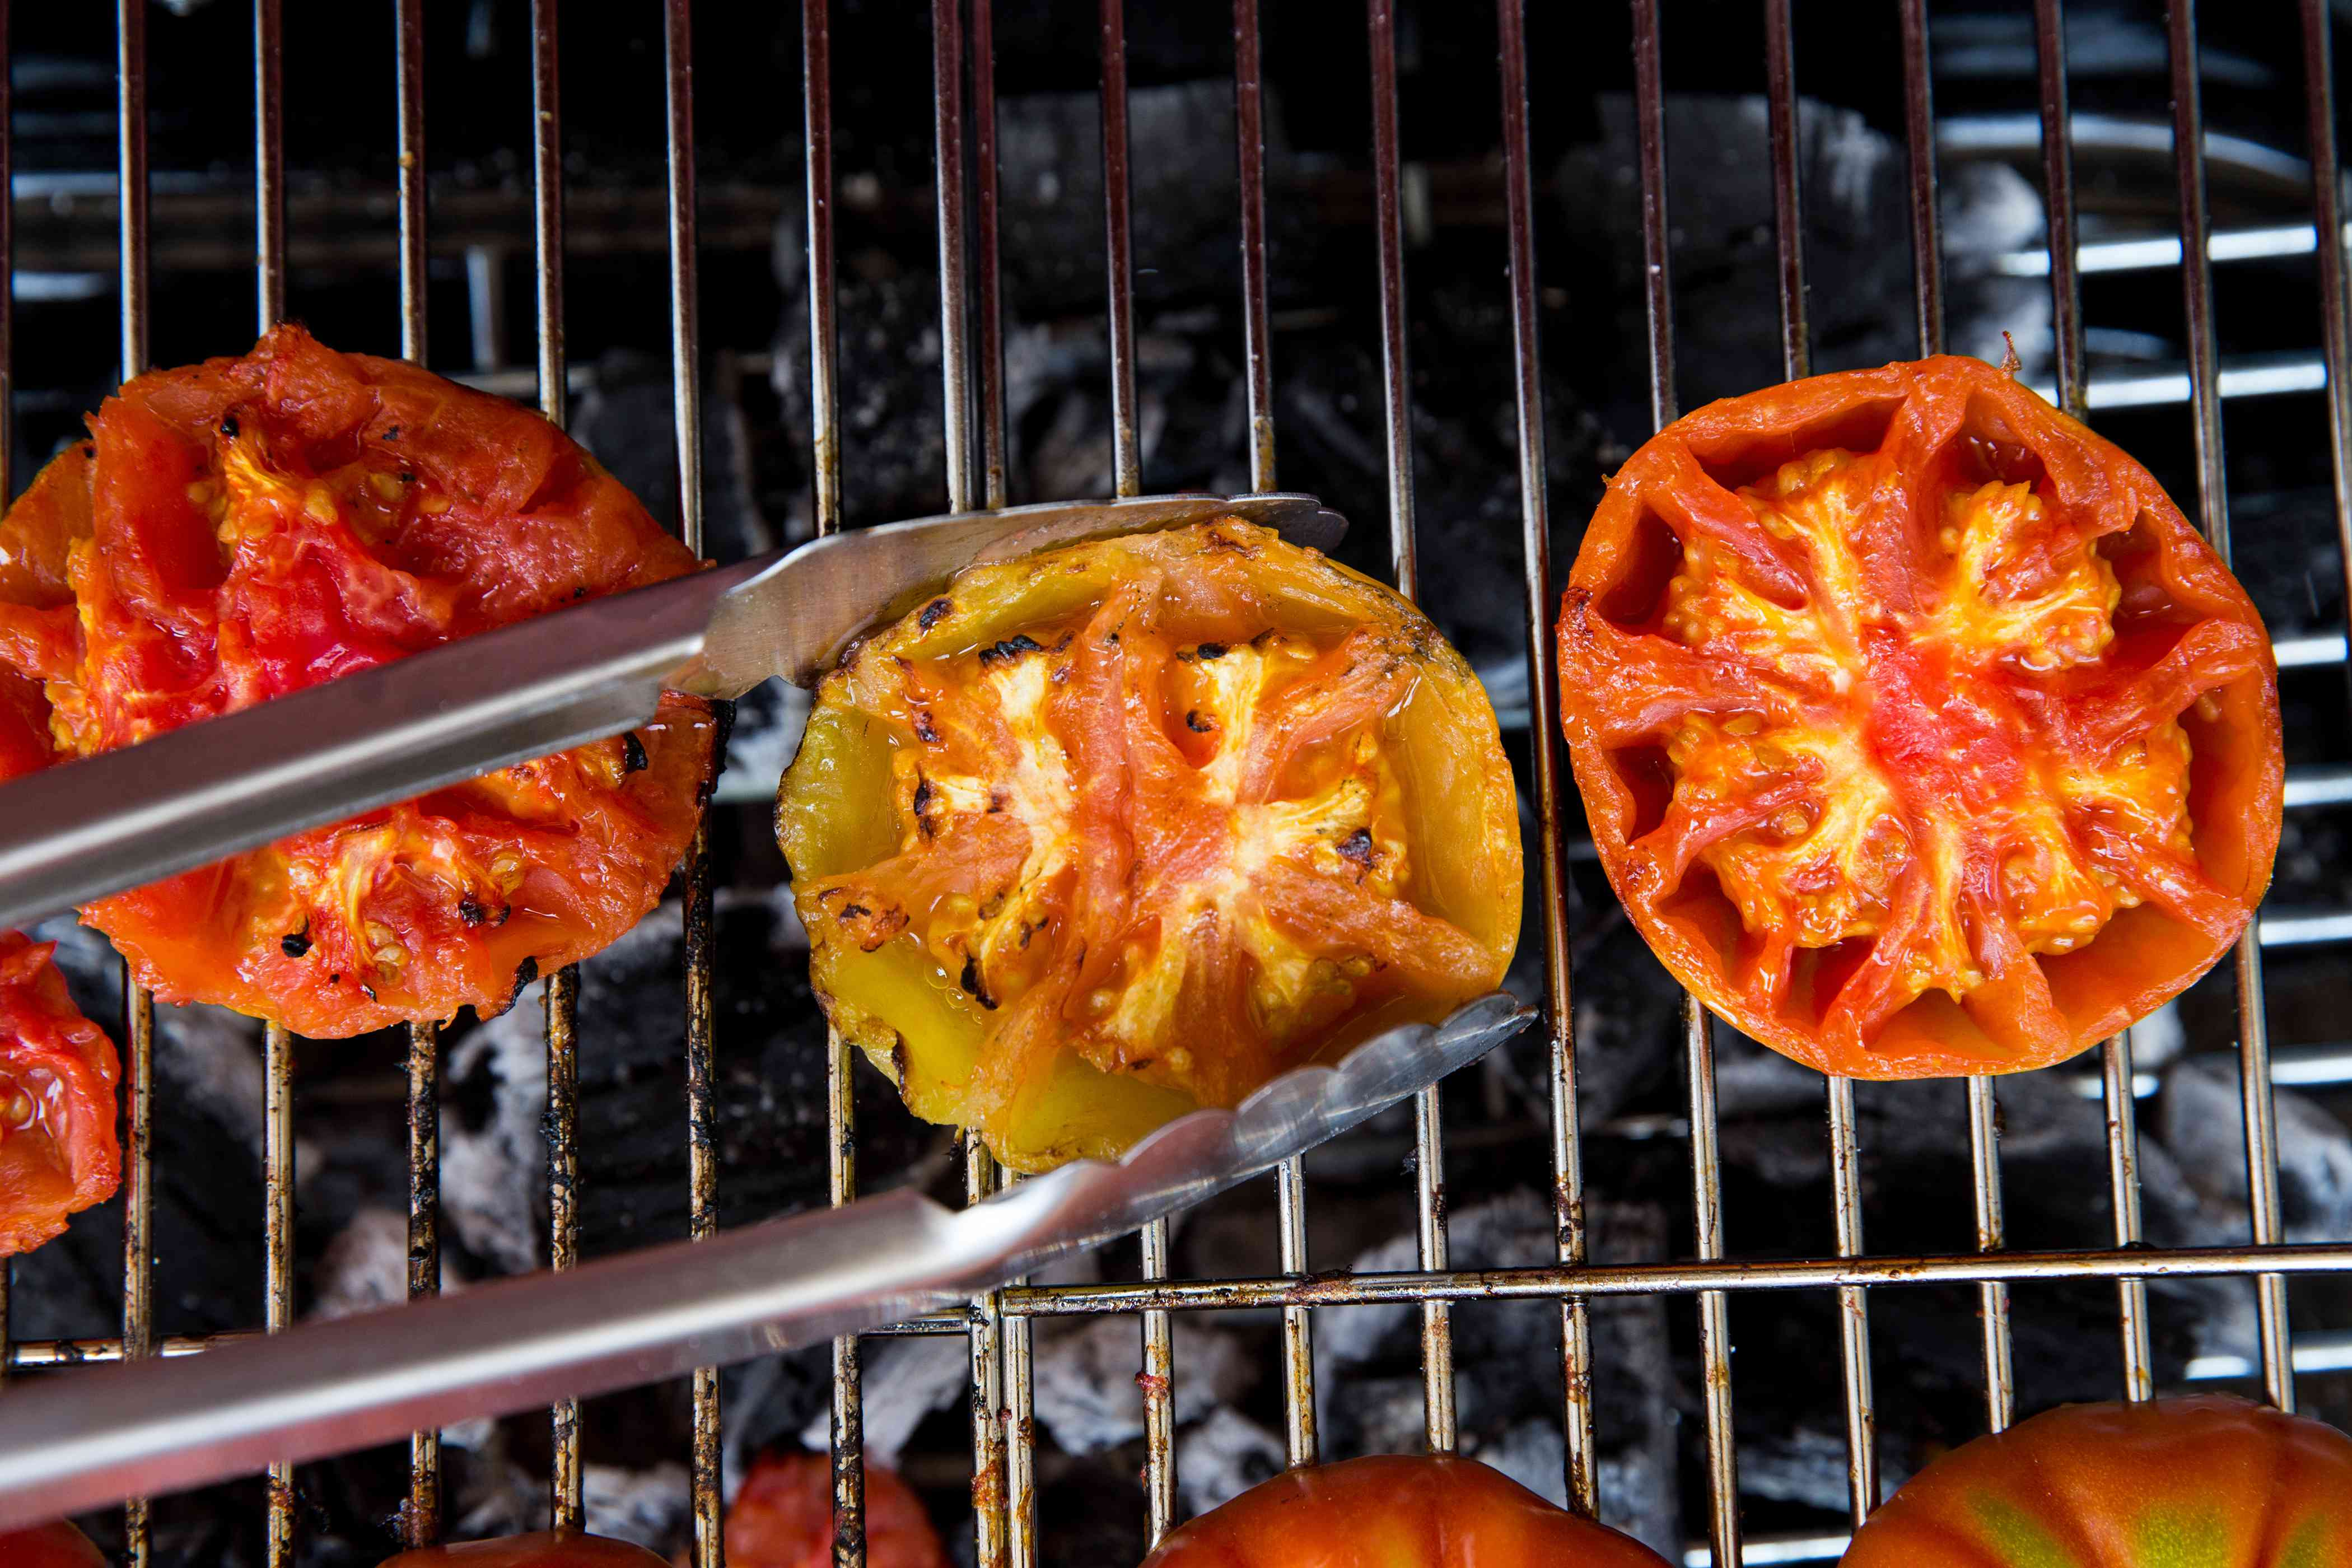 Removing cooked tomatoes from the grill